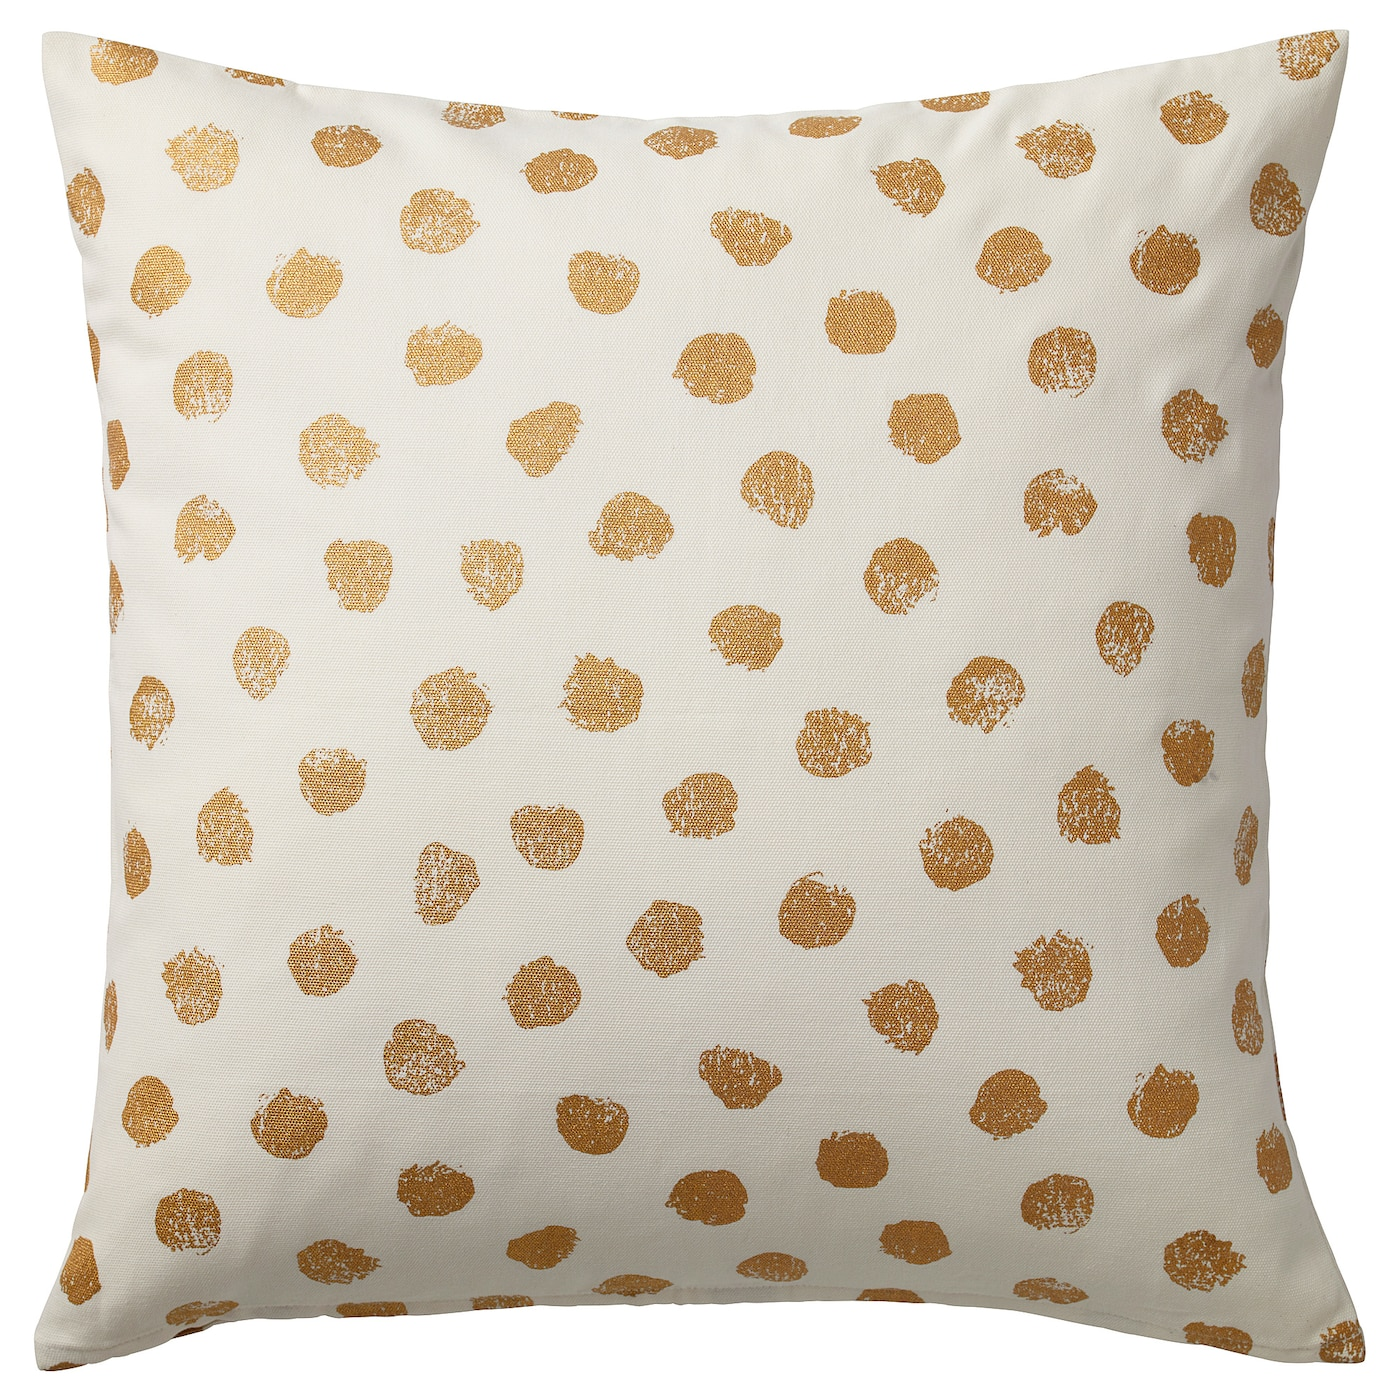 Sk 196 Gg 214 Rt Cushion Cover White Gold Color Ikea